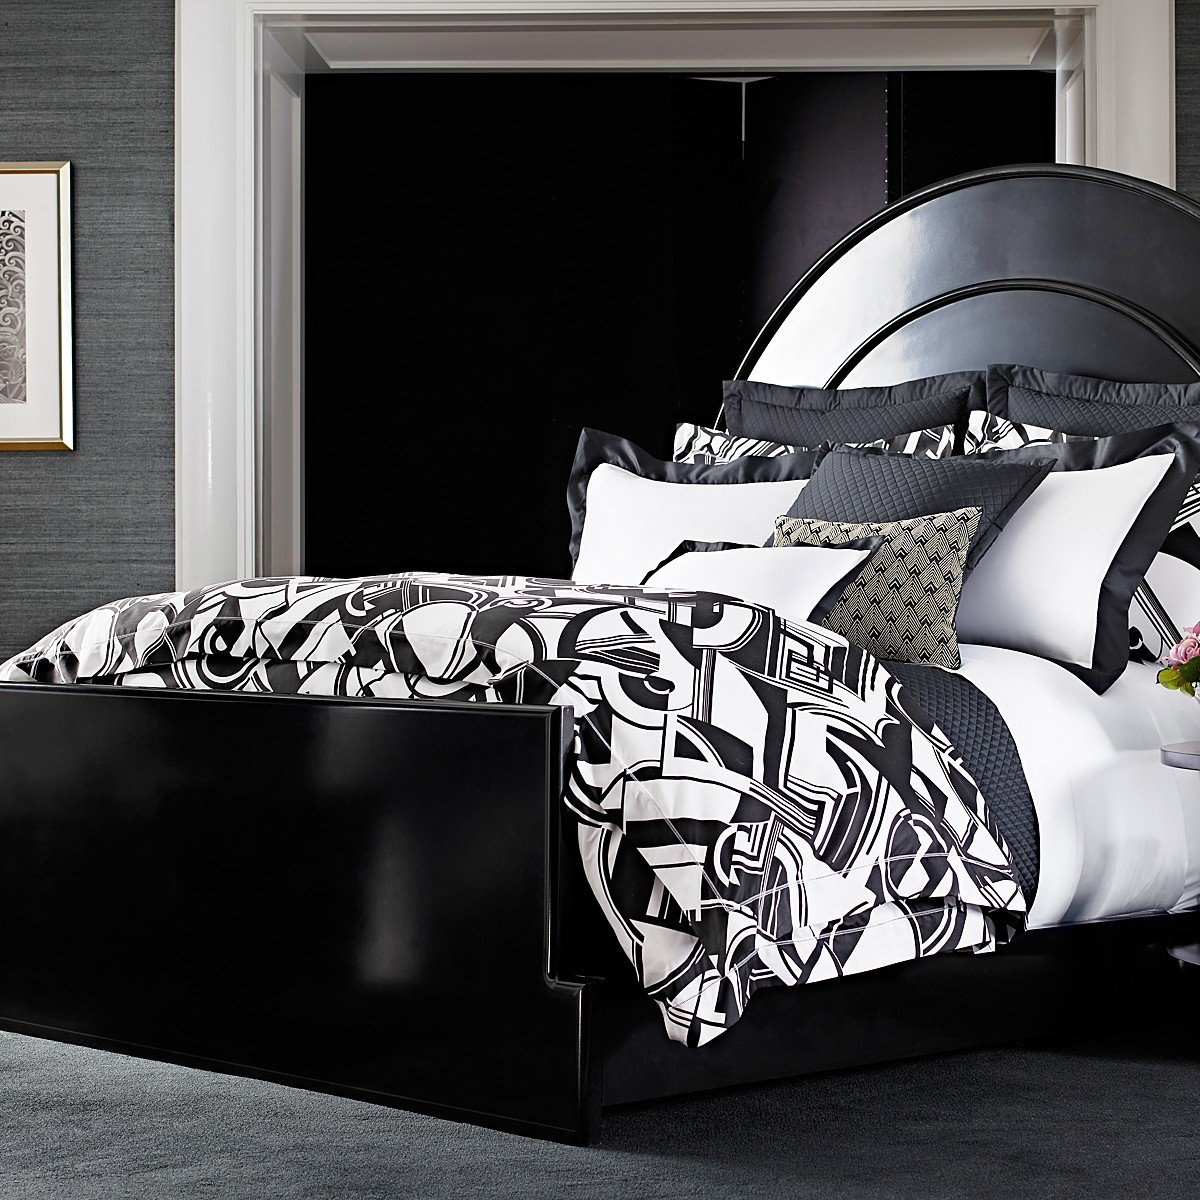 comforter sets suggestion for the bedding graffiti of girls art than and more boys